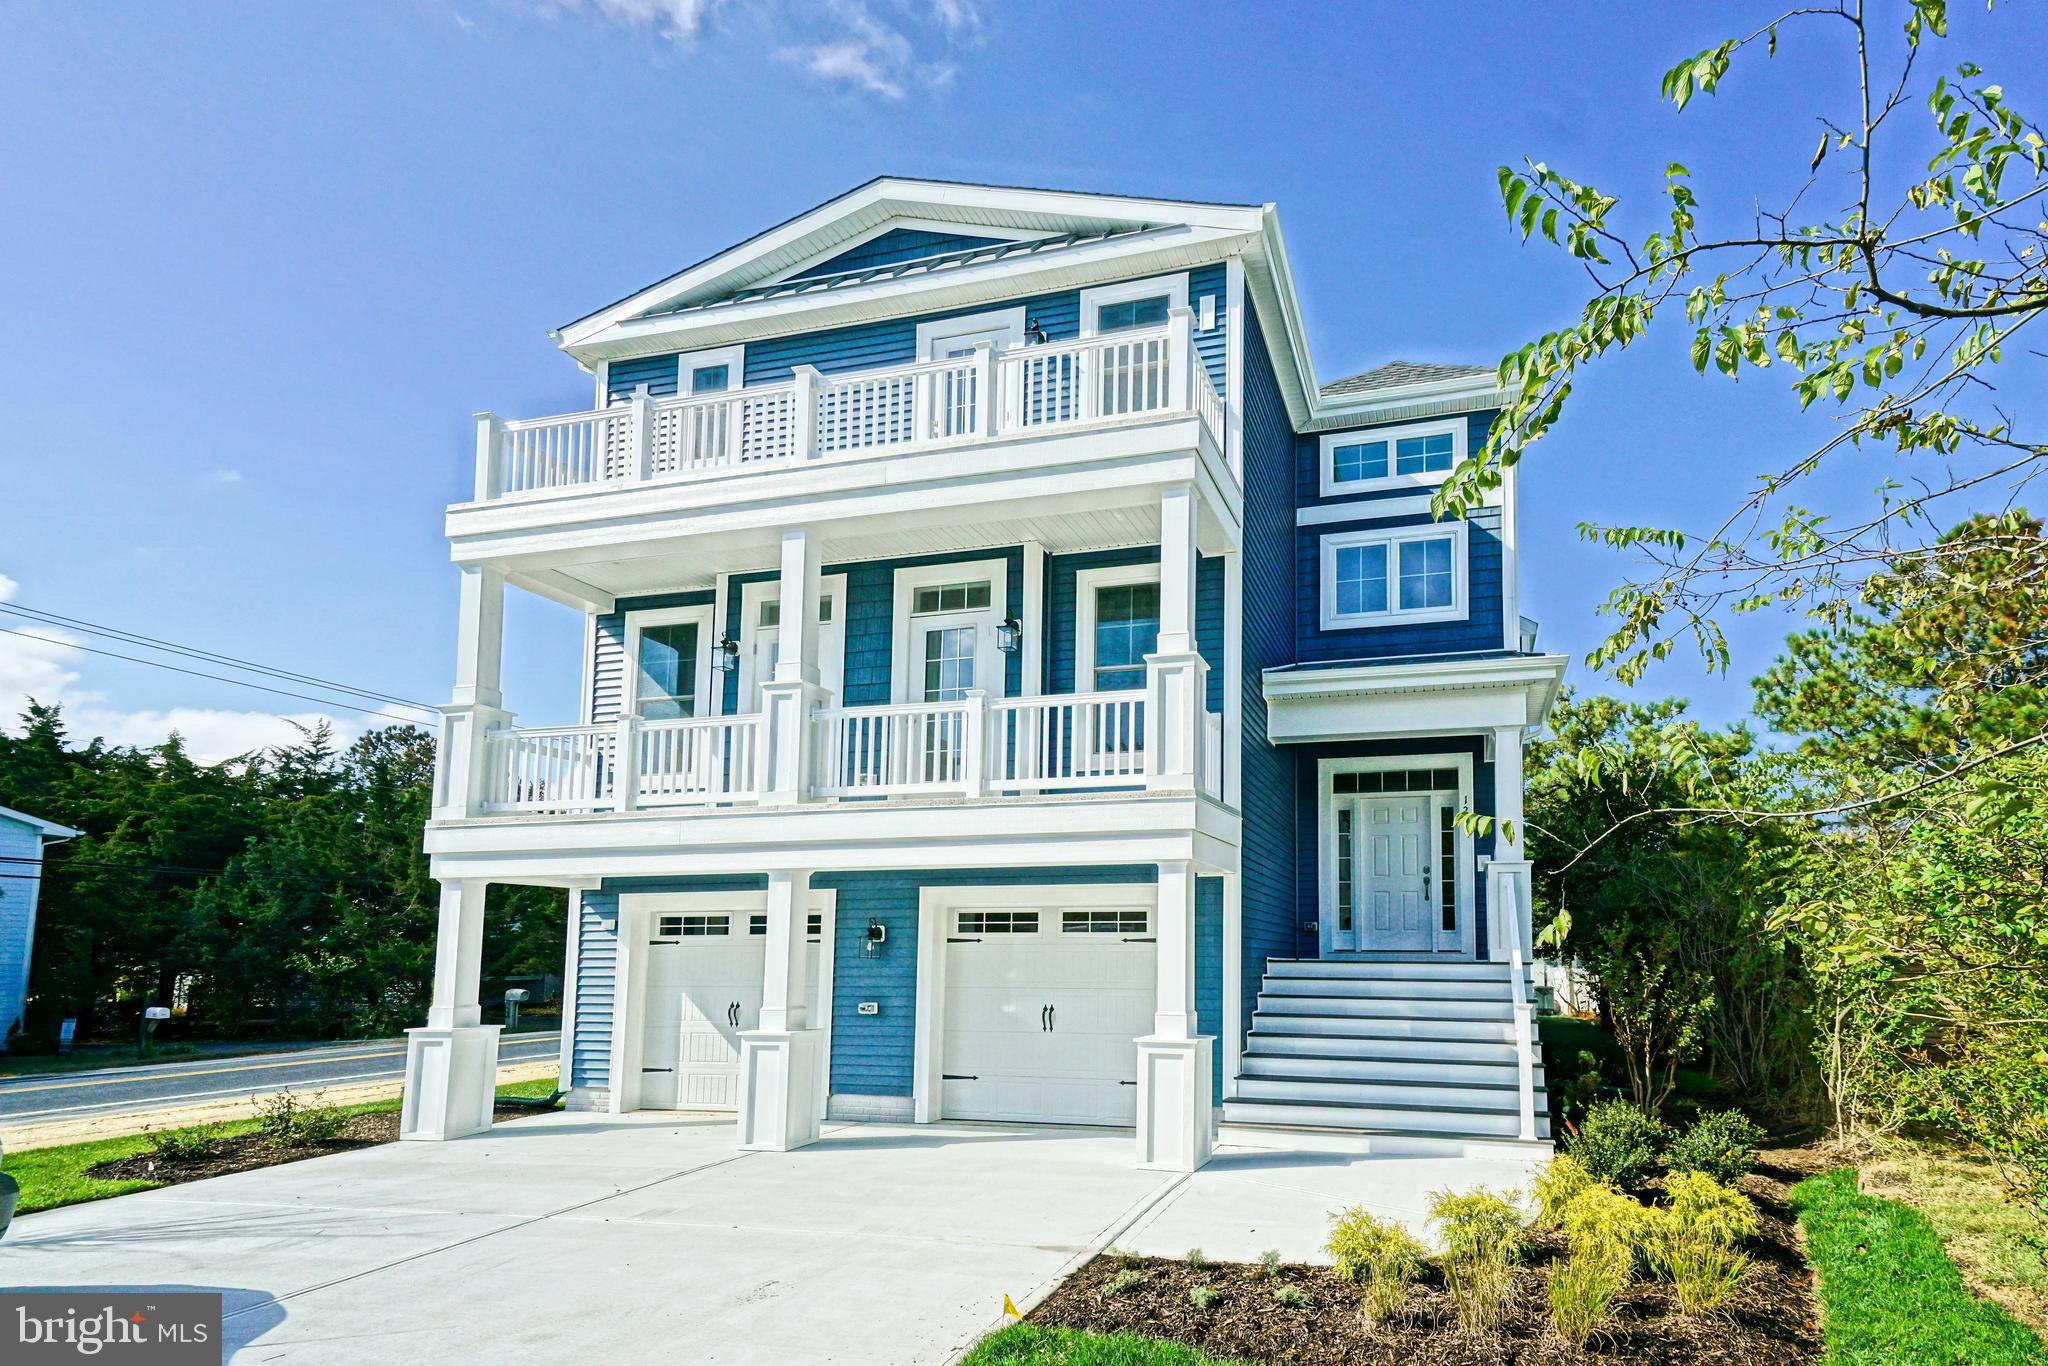 CATALINA LIFESTYLE IN LEWES BEACH! The Schell Brothers' Catalina Model is designed with supreme coastal living in mind, and you're invited to experience it from the ground up! This new construction home on Lewes Beach offers 5BR, 4.5BA (can be outfitted for more), and showcases an open kitchen, dining and great room design, two master bedrooms, plus decks and porches to enjoy the soothing Lewes Rehoboth Canal views and bay breezes. Picture yourself just 3 blocks to the water and sands of the Delaware Bay, and within walking distance to in-town Historic Lewes, shopping and dining. Situated on a large lot with room for a pool! Construction starts soon: don't delay so you can customize to suit your taste! Please note that the photos are of a recent build of the same model (which had been modified to 6 bedrooms & 4.5 baths), and are for illustrative purposes only. Actual build may vary due to lot dimensions & build out customization.